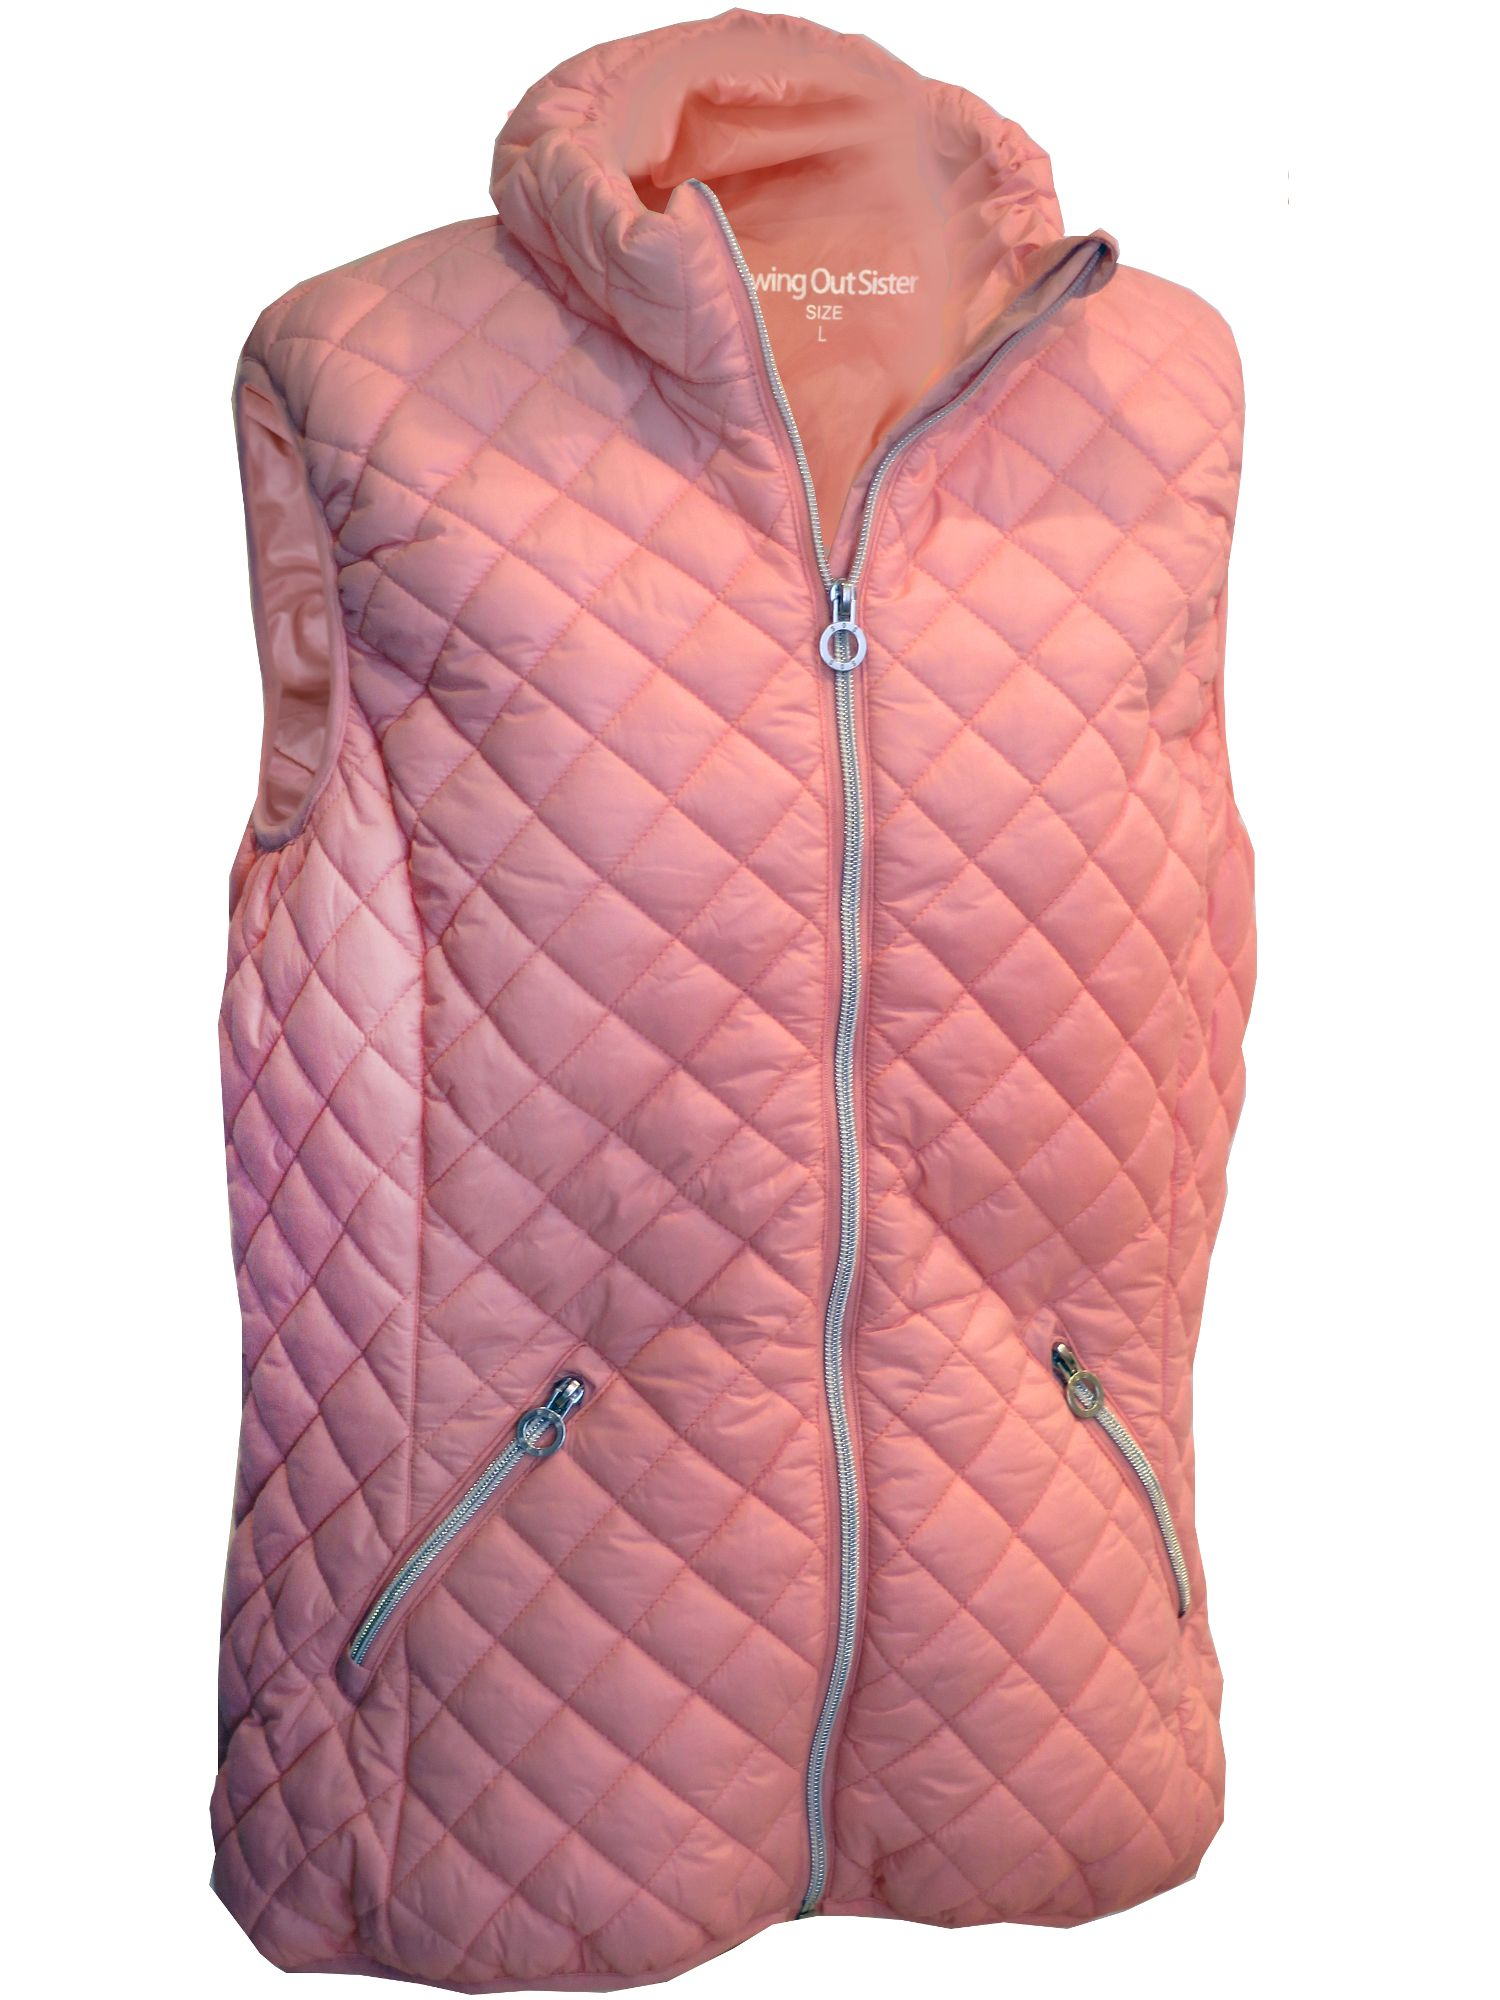 Swing Out Sister Swing Out Sister Harley Gilet, Pink